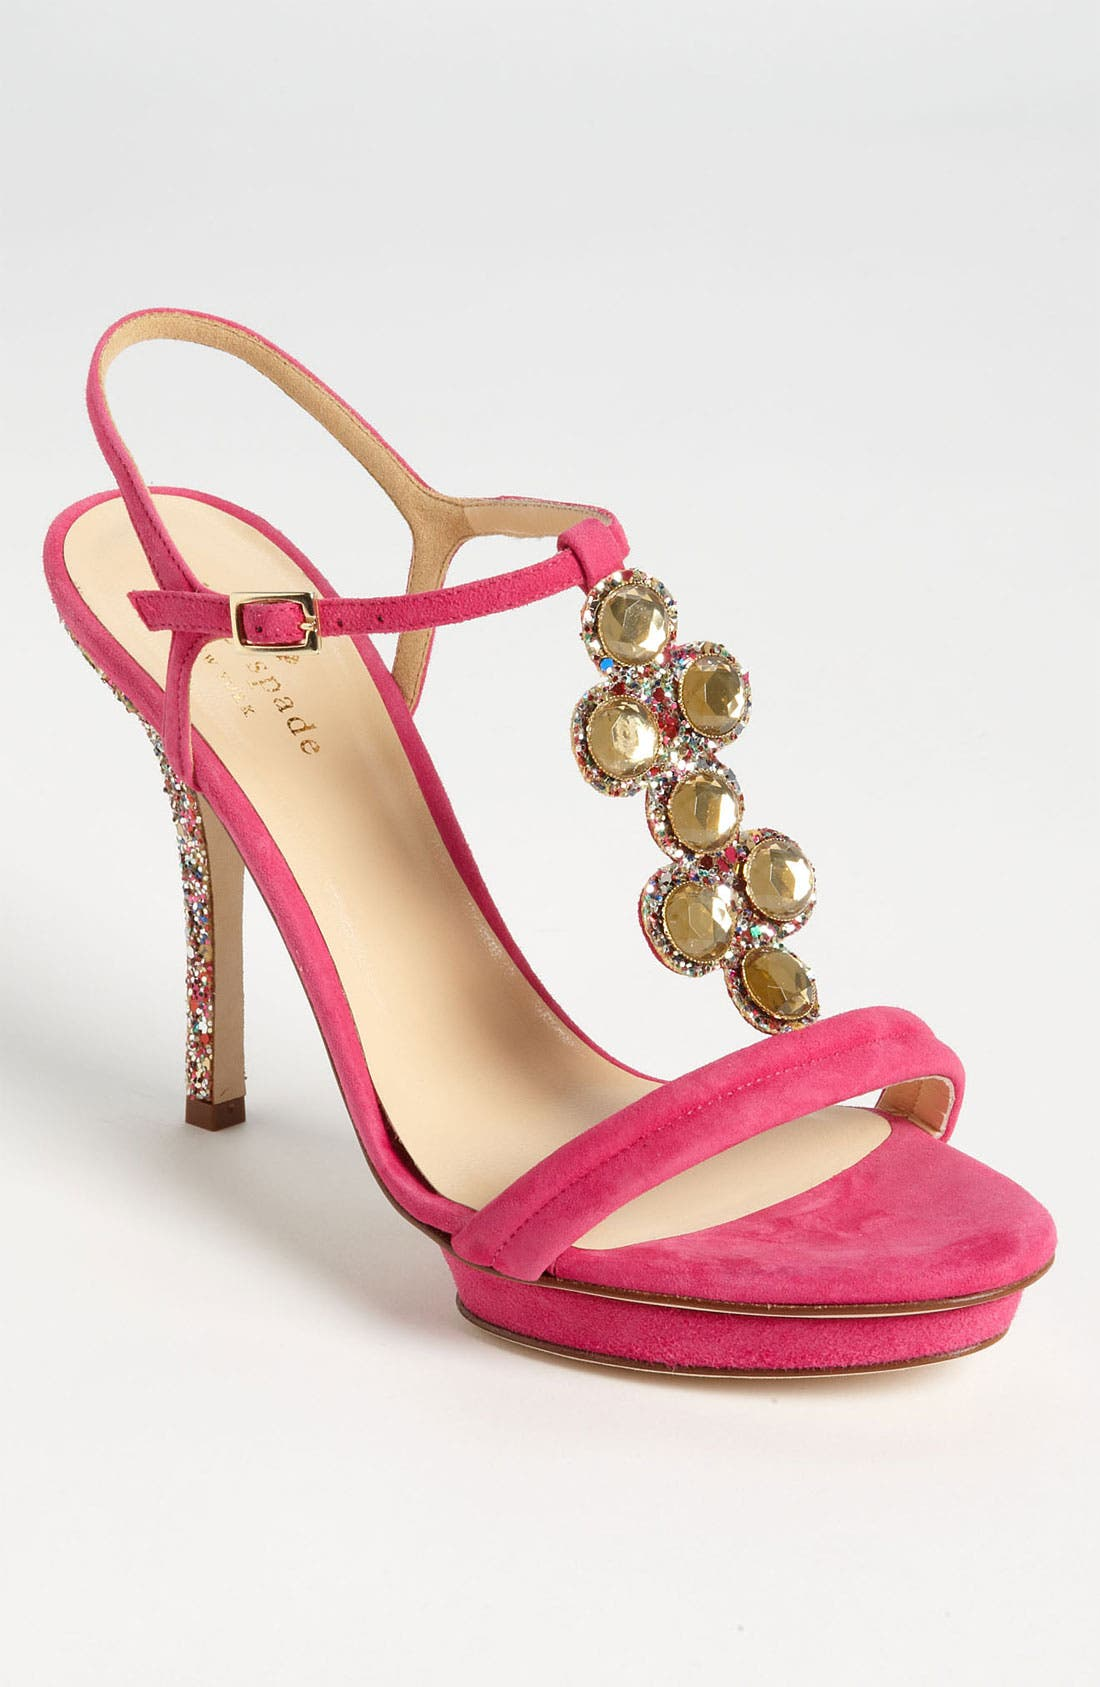 Alternate Image 1 Selected - kate spade new york 'velvet' sandal